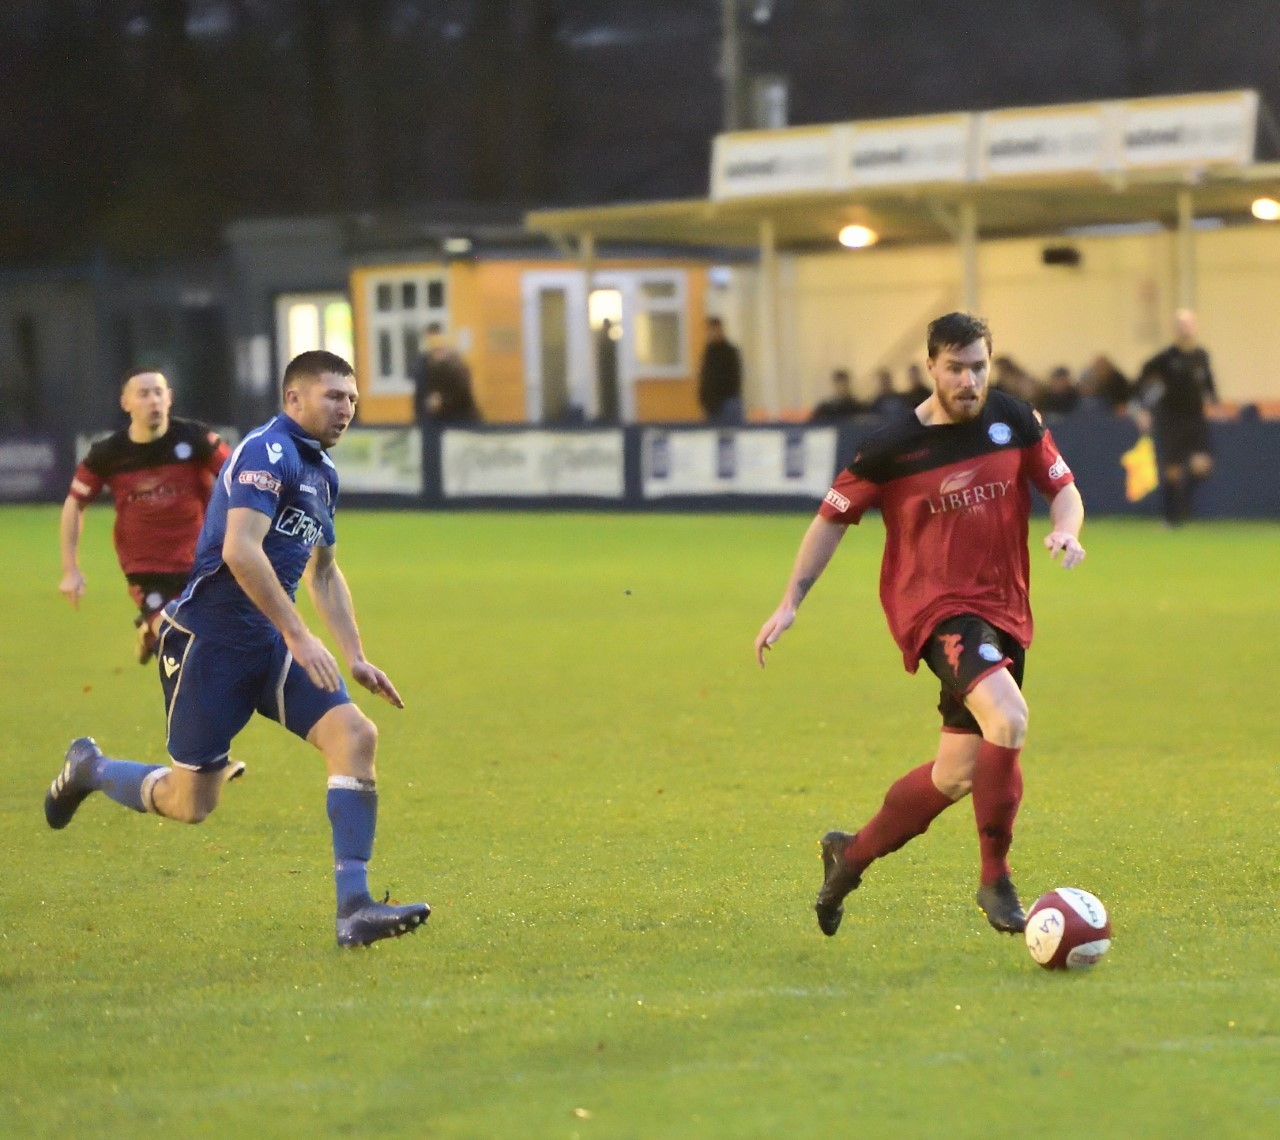 Jamie Rainford v Kidsgrove. Picture by Frank Crook